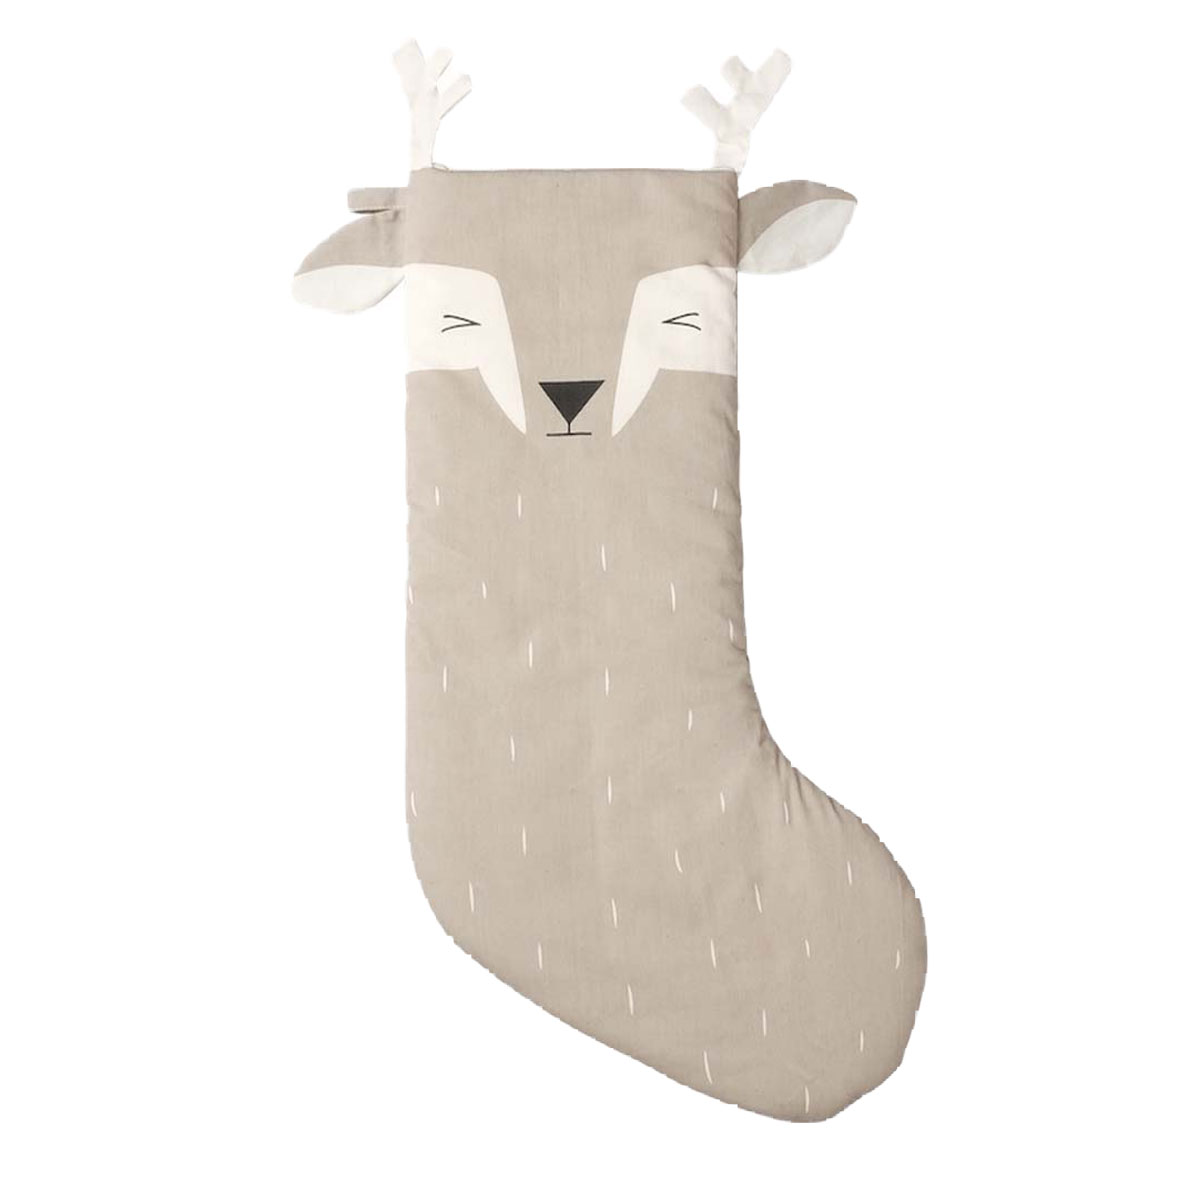 Fabelab Cotton Holiday Stocking in Sleepy Deer